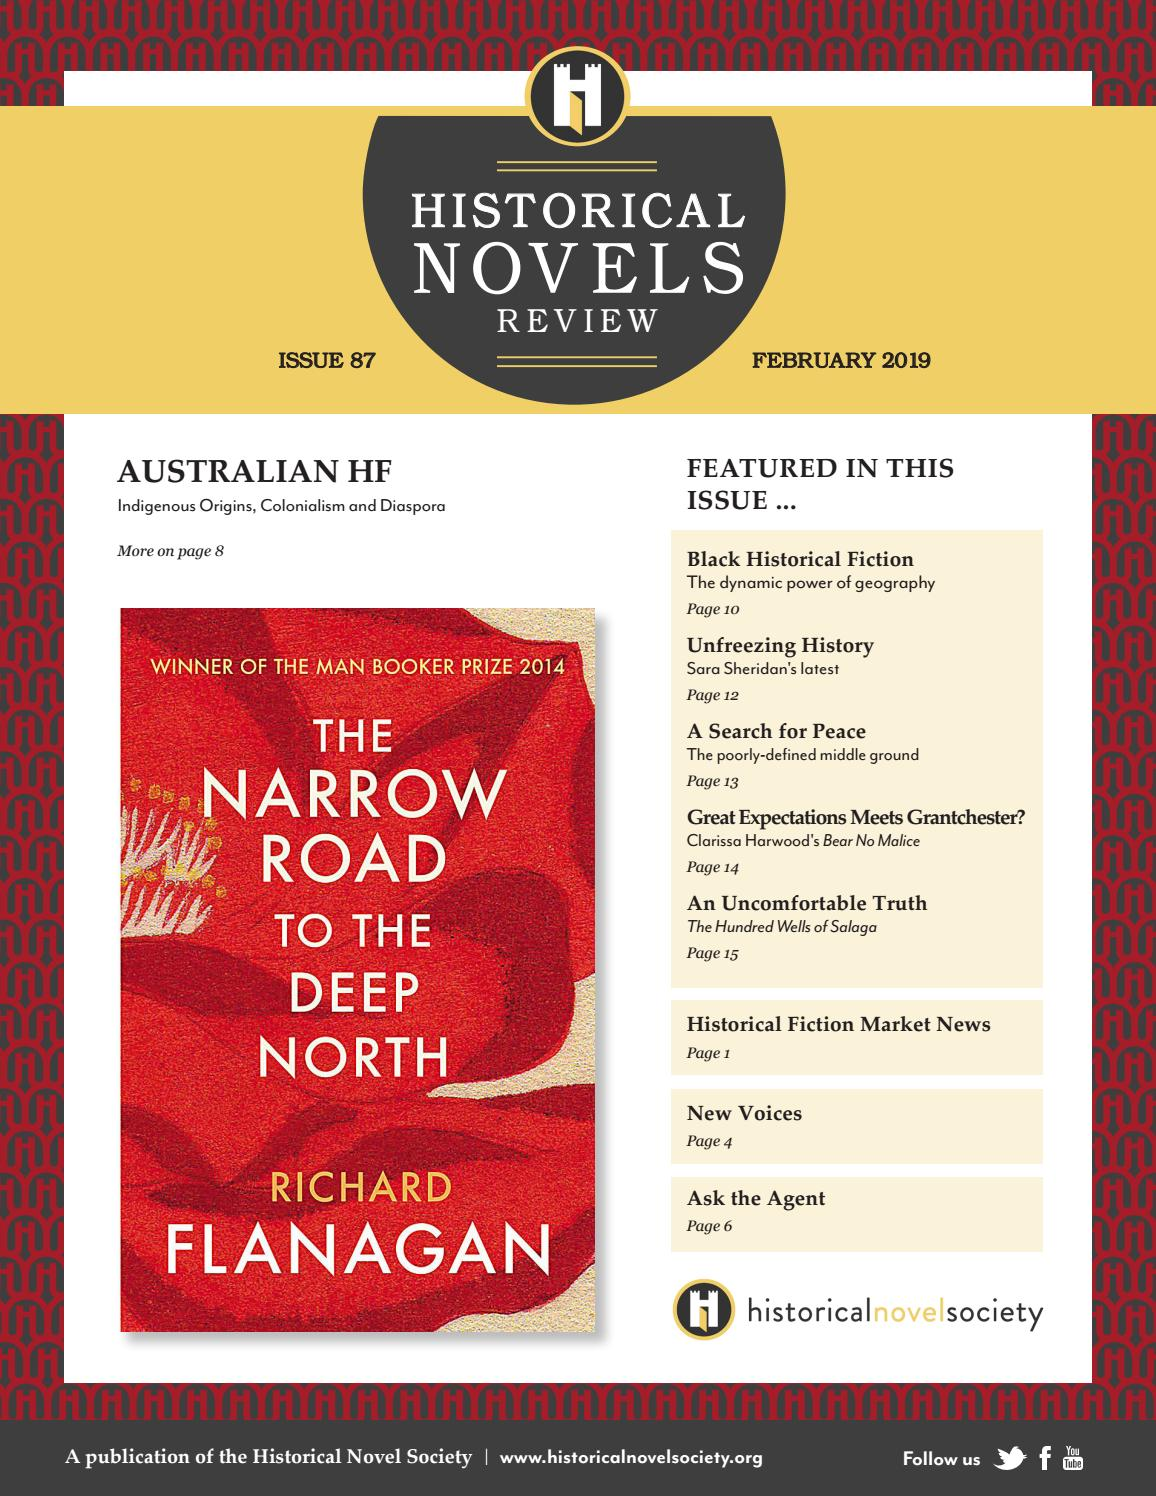 Historical Novels Review, Issue 87 (February 2019) by The